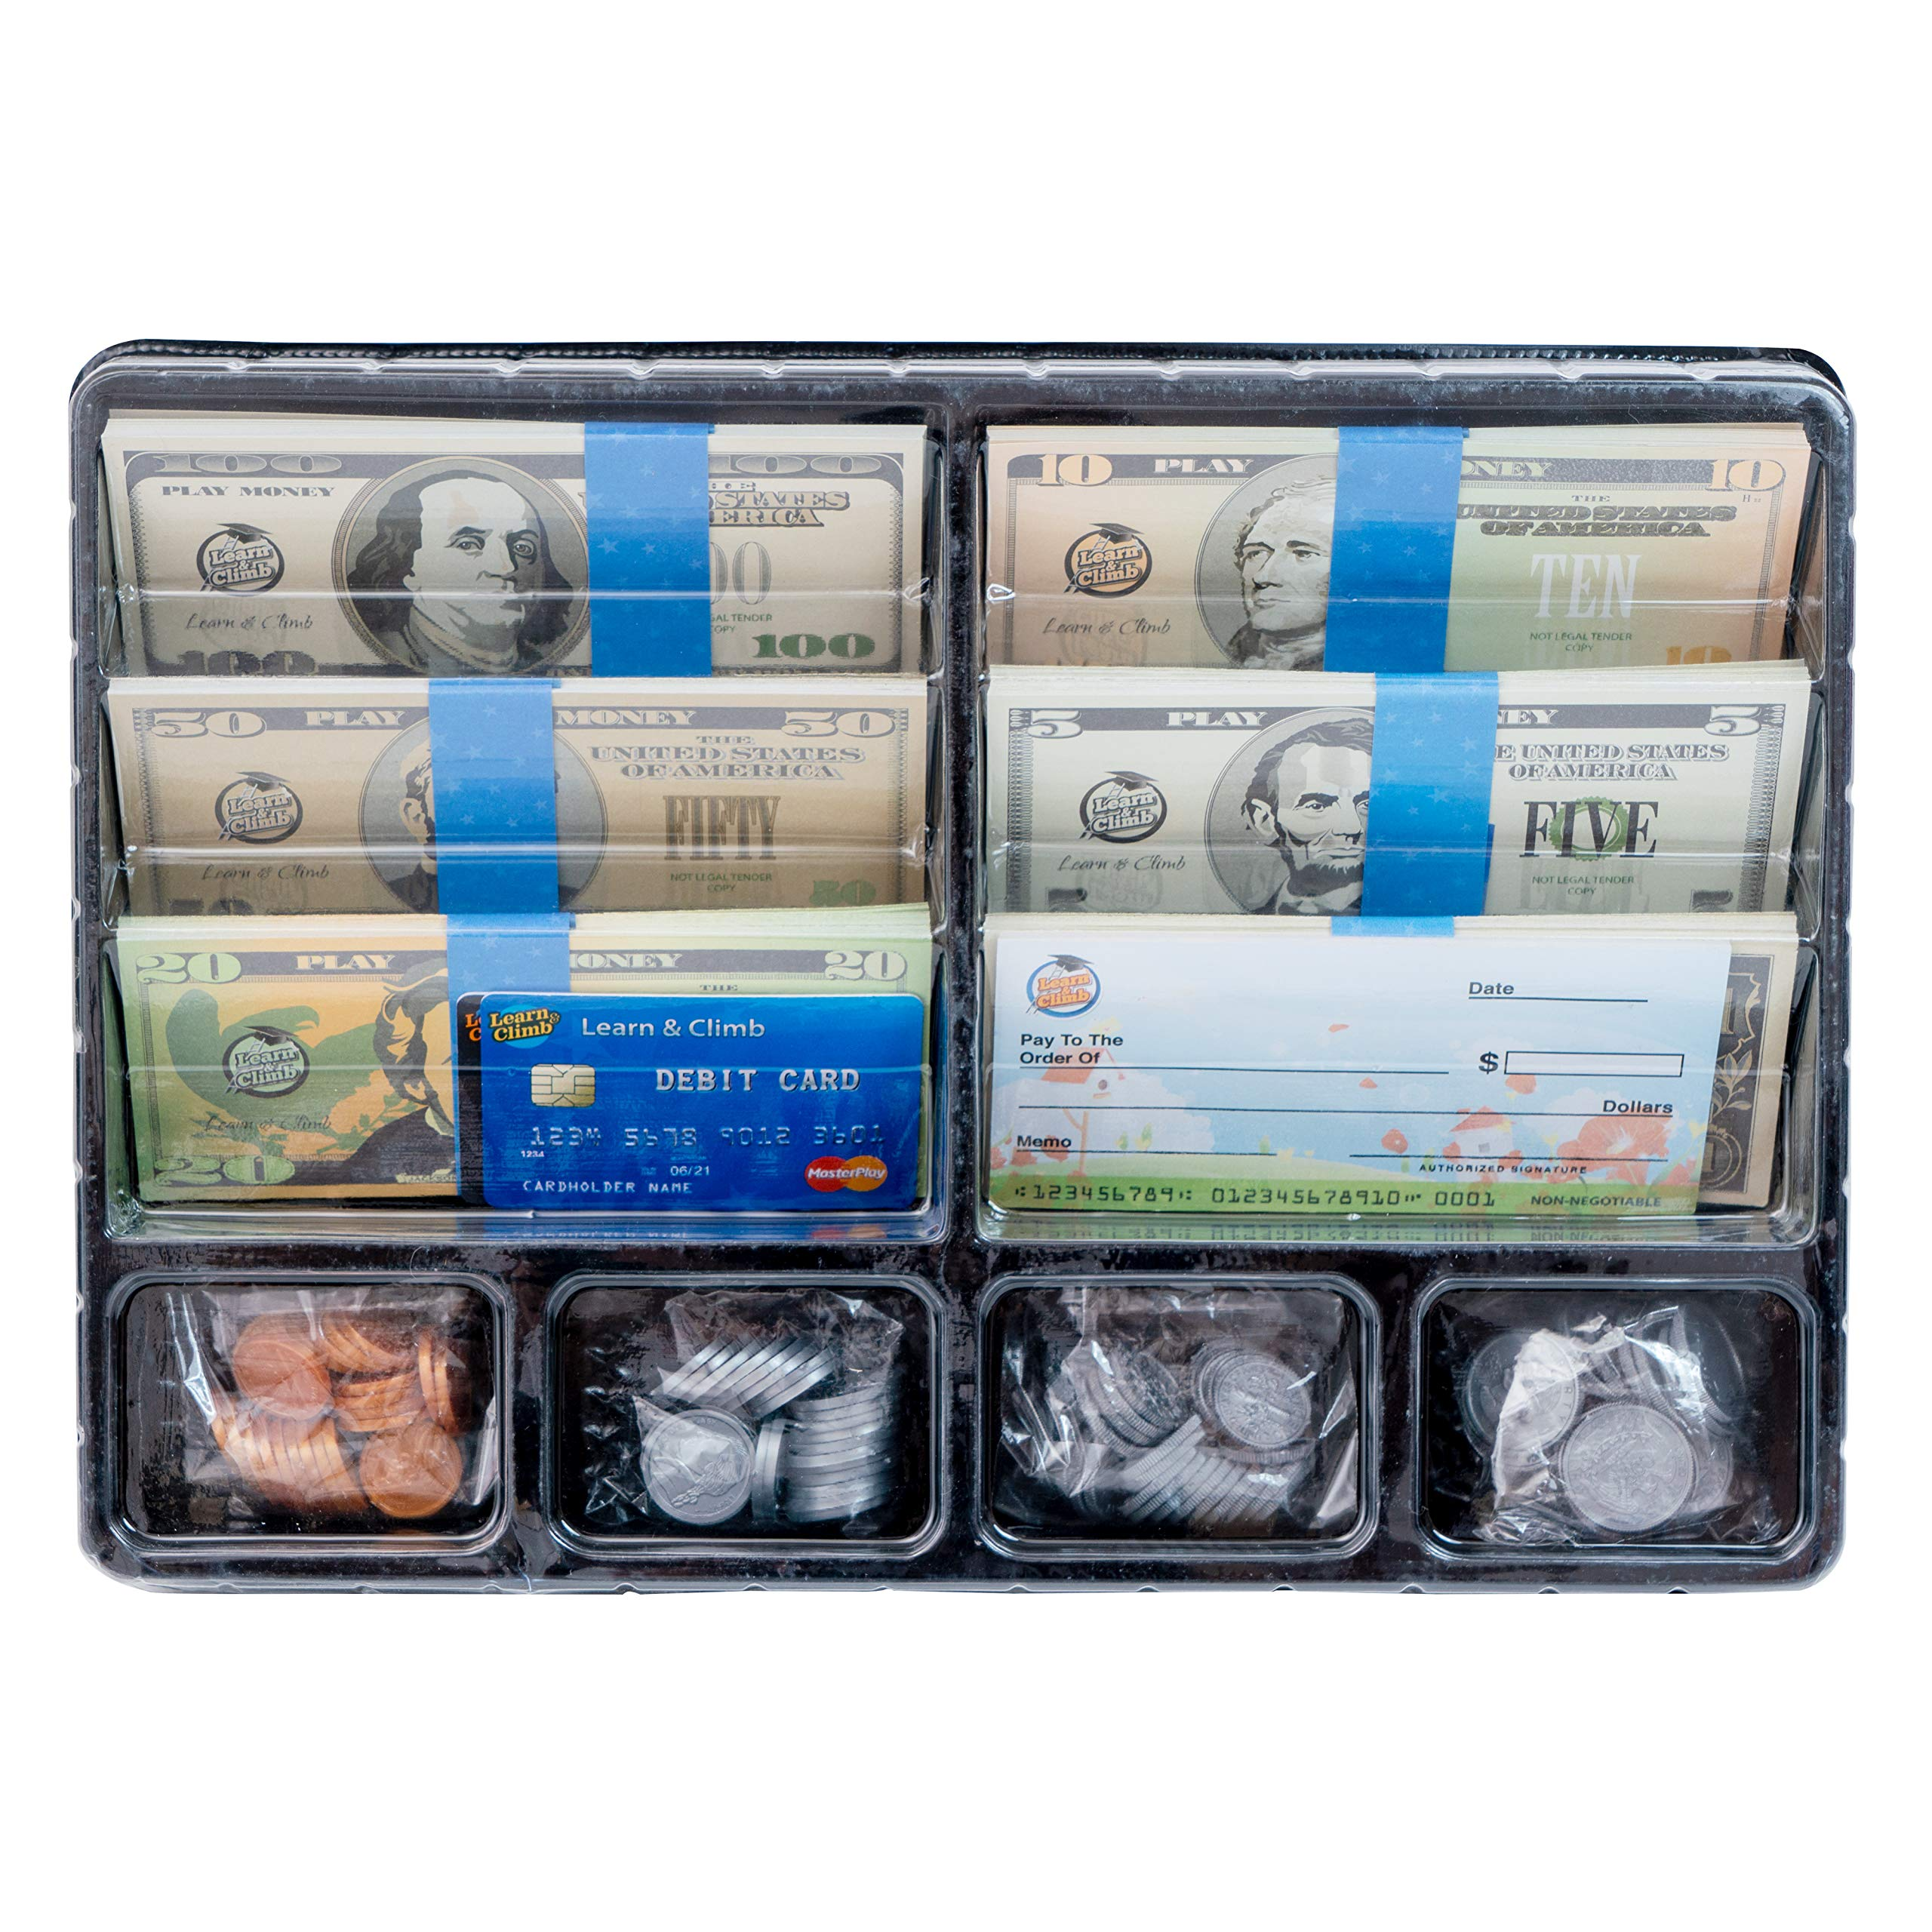 Learn & Climb Play Money Set for Kids - Realistic Dollar Bills, Coins, Credit & Debit Cards & Checkbook. Add-on for Pretend Play Cash Register by Learn & Climb